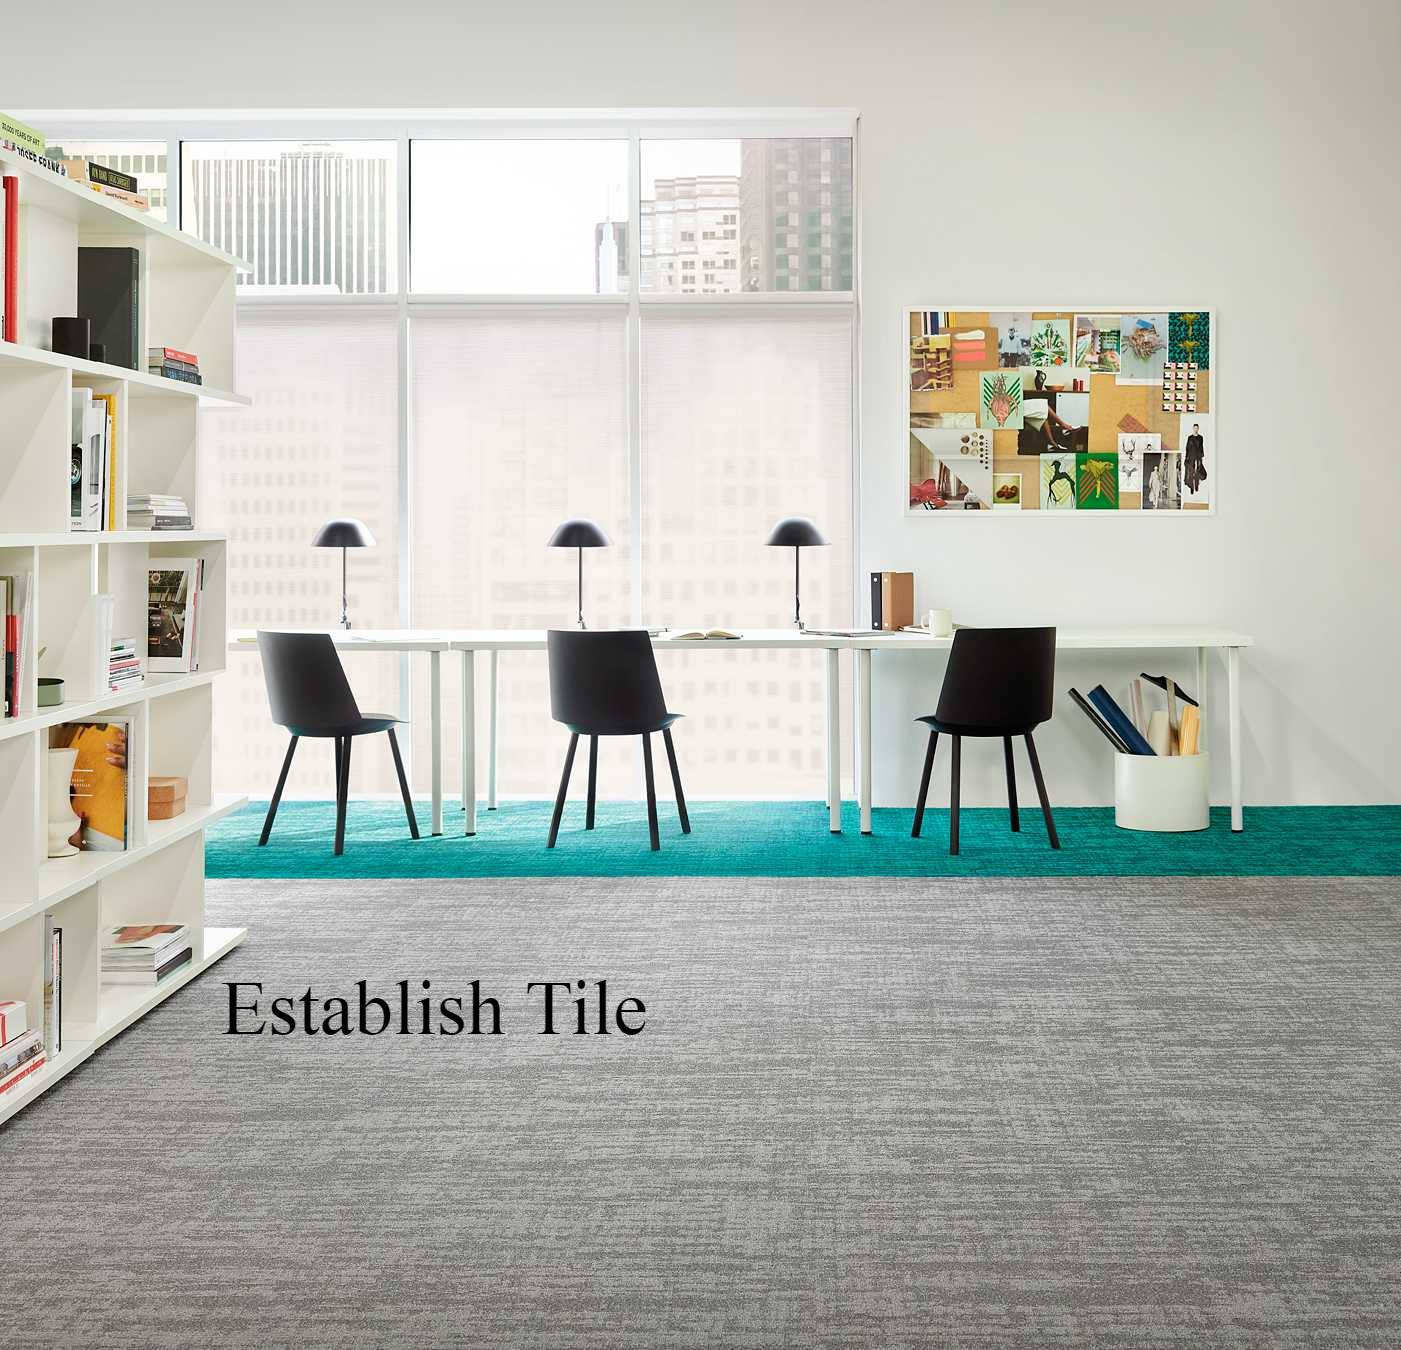 Establish Tile - Cuadrado Alfombras